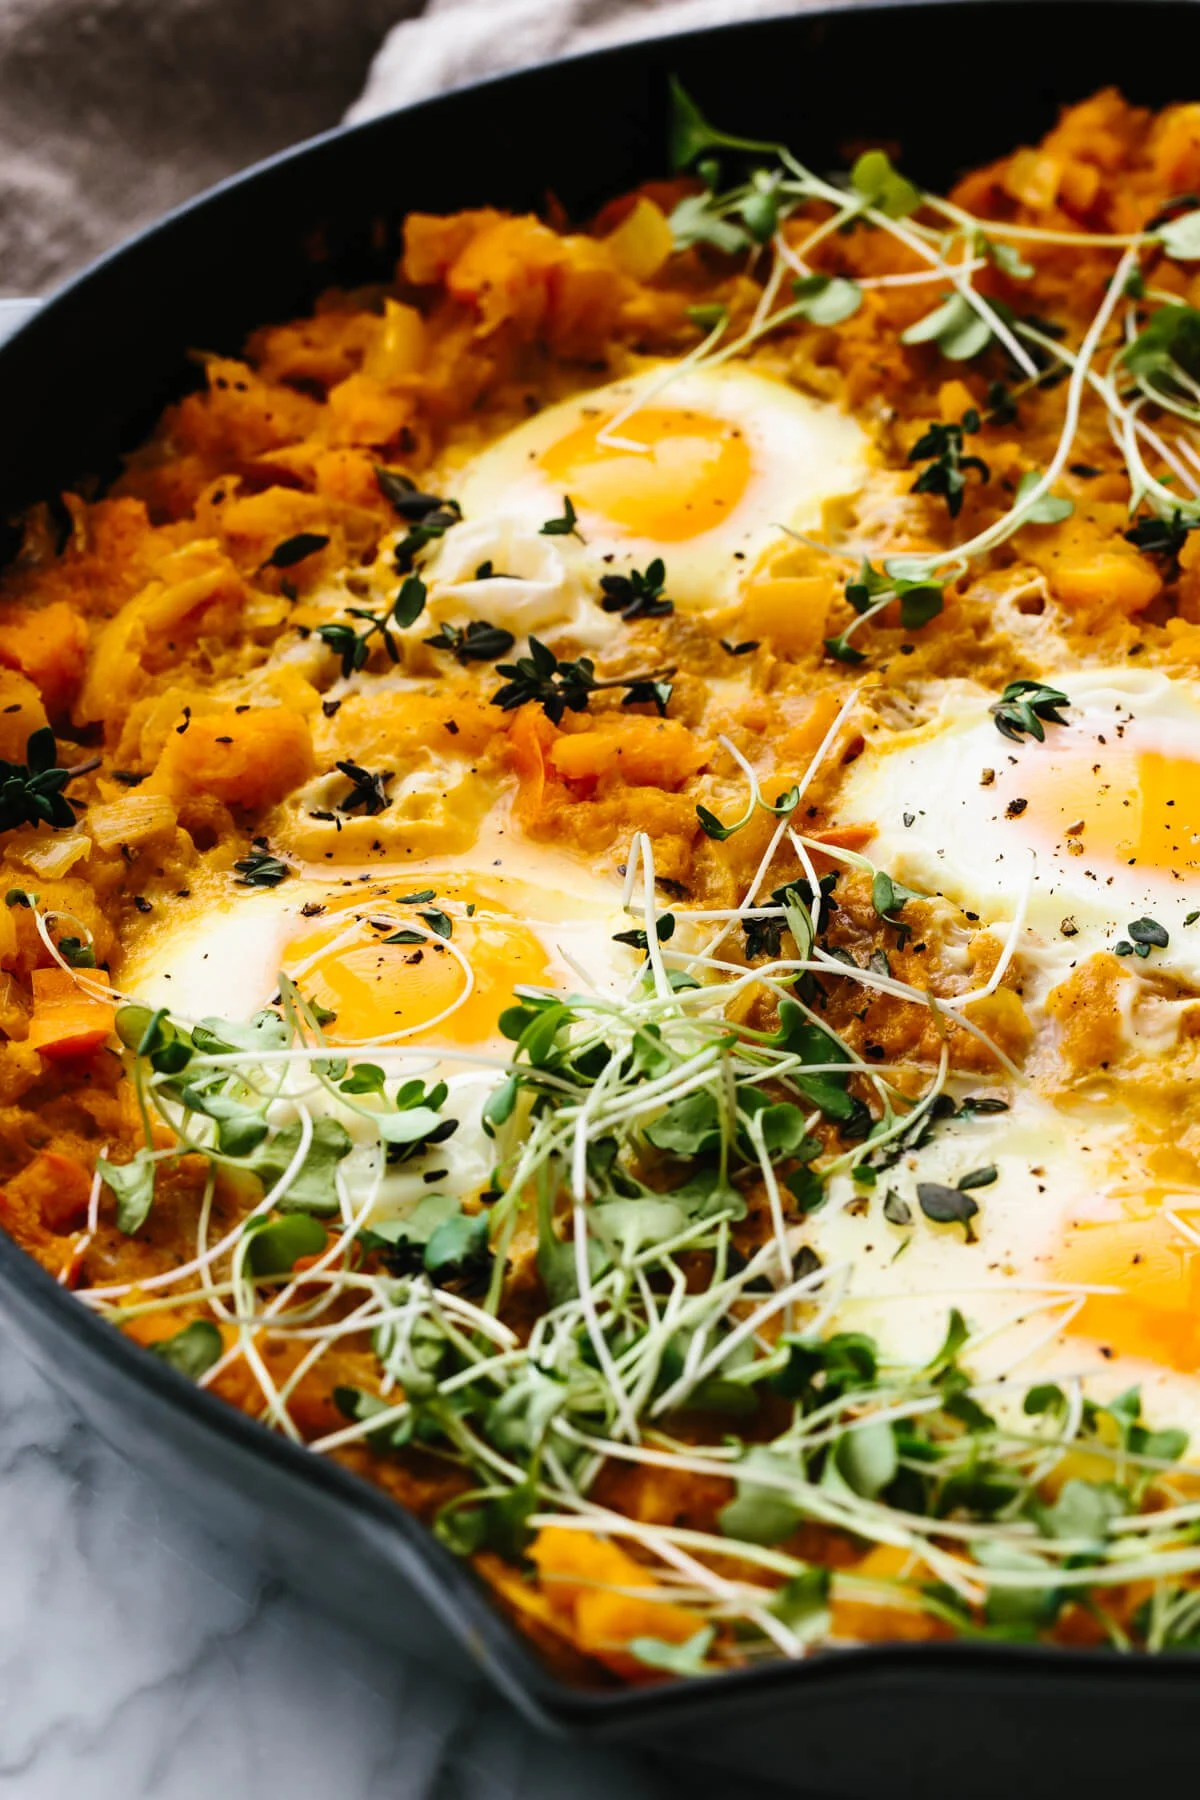 A skillet with orange shakshuka.